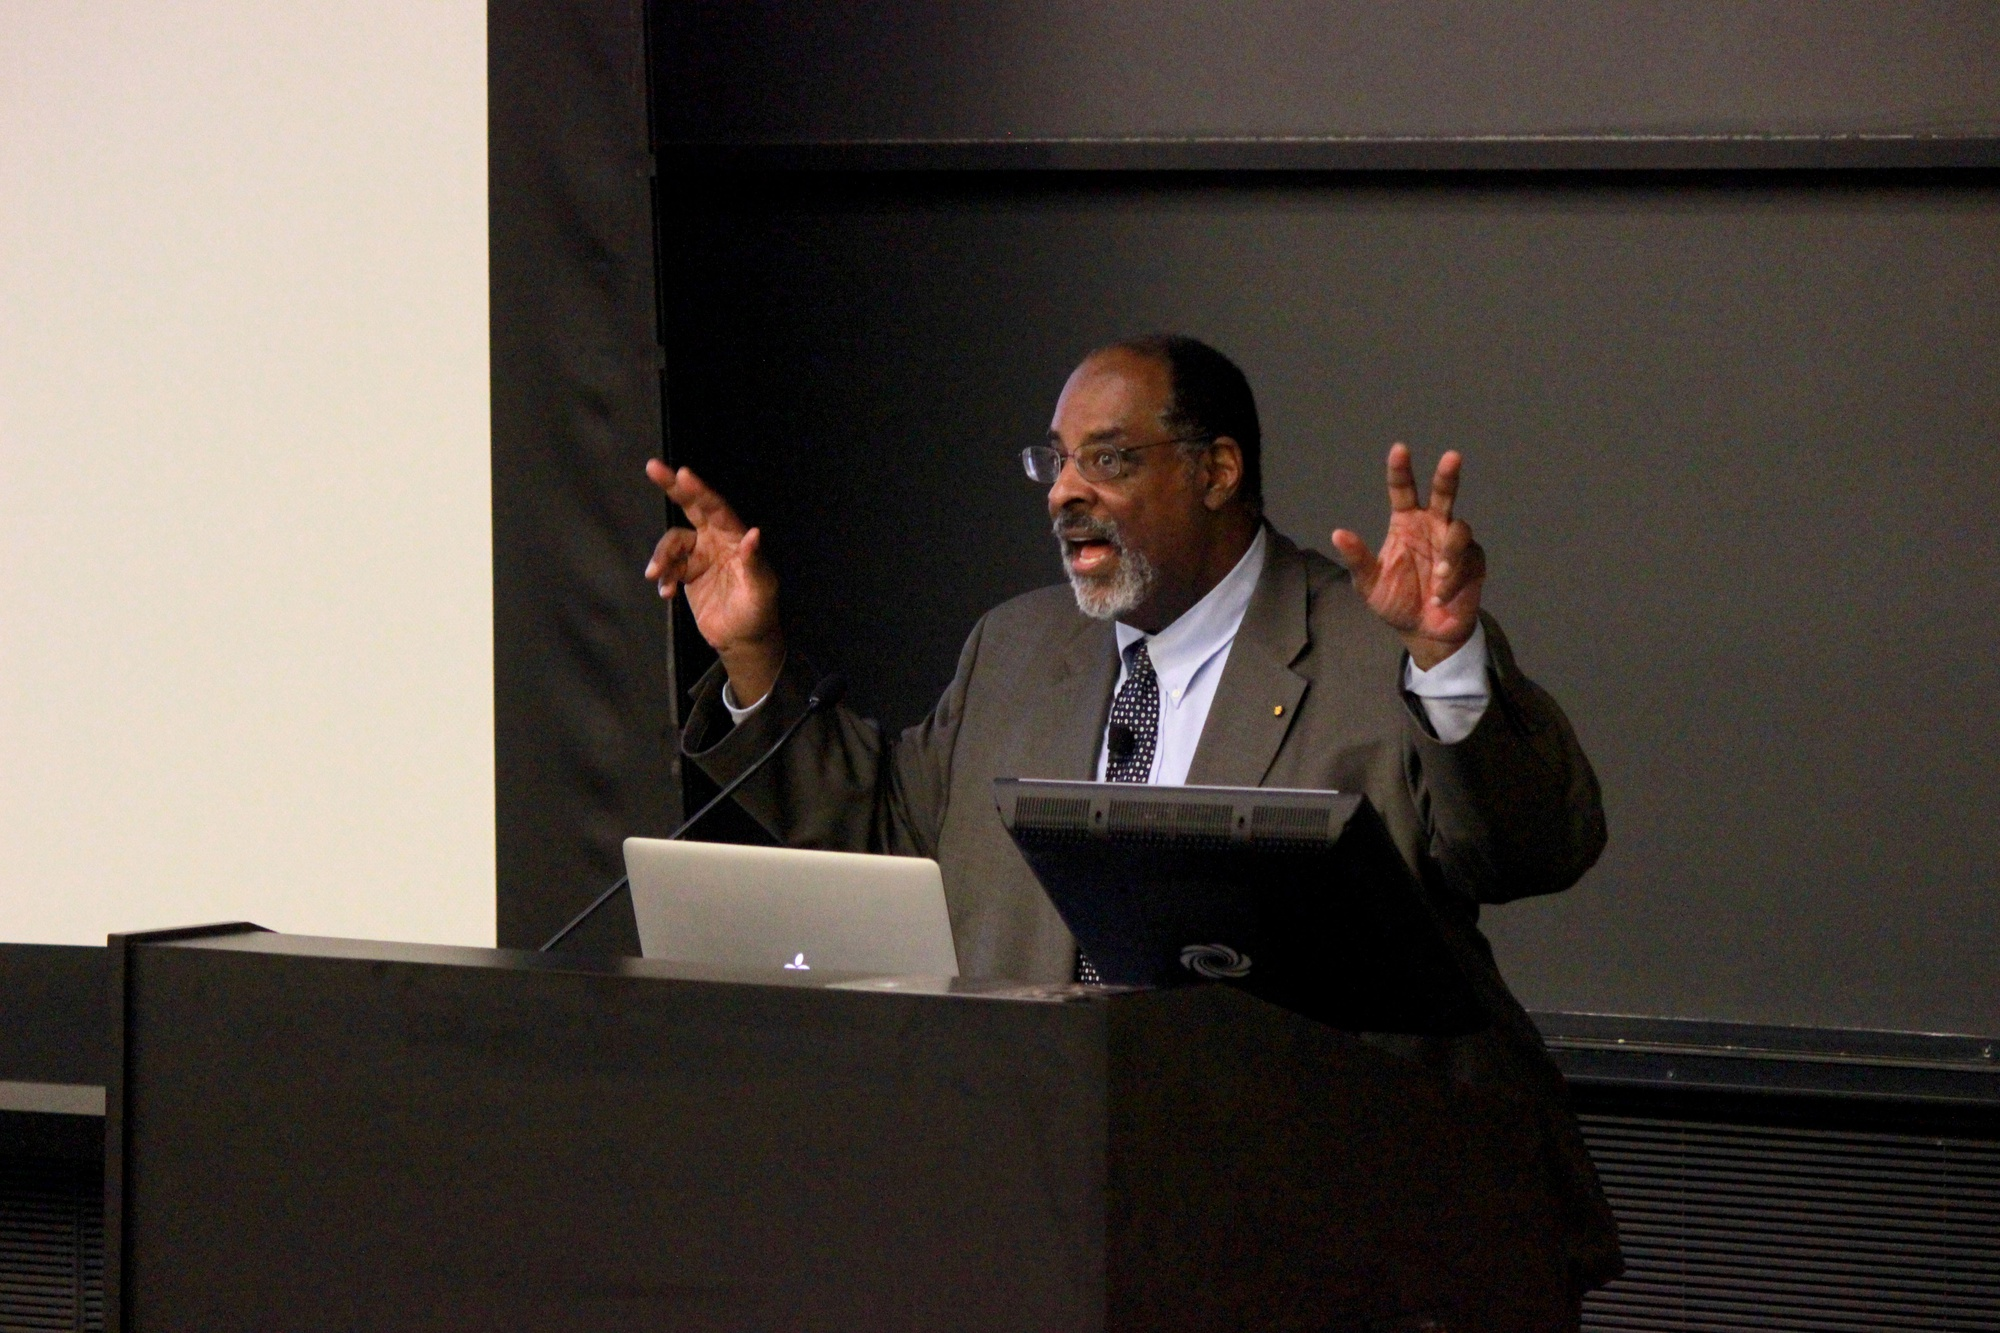 Joseph L. Graves discusses the legacies of former Harvard professor Louis Agassiz and Charles Darwin's legacies in Northwest Labs Tuesday night. The talk was part of a speaker series put on by the Peabody Museum for their 150th anniversary.